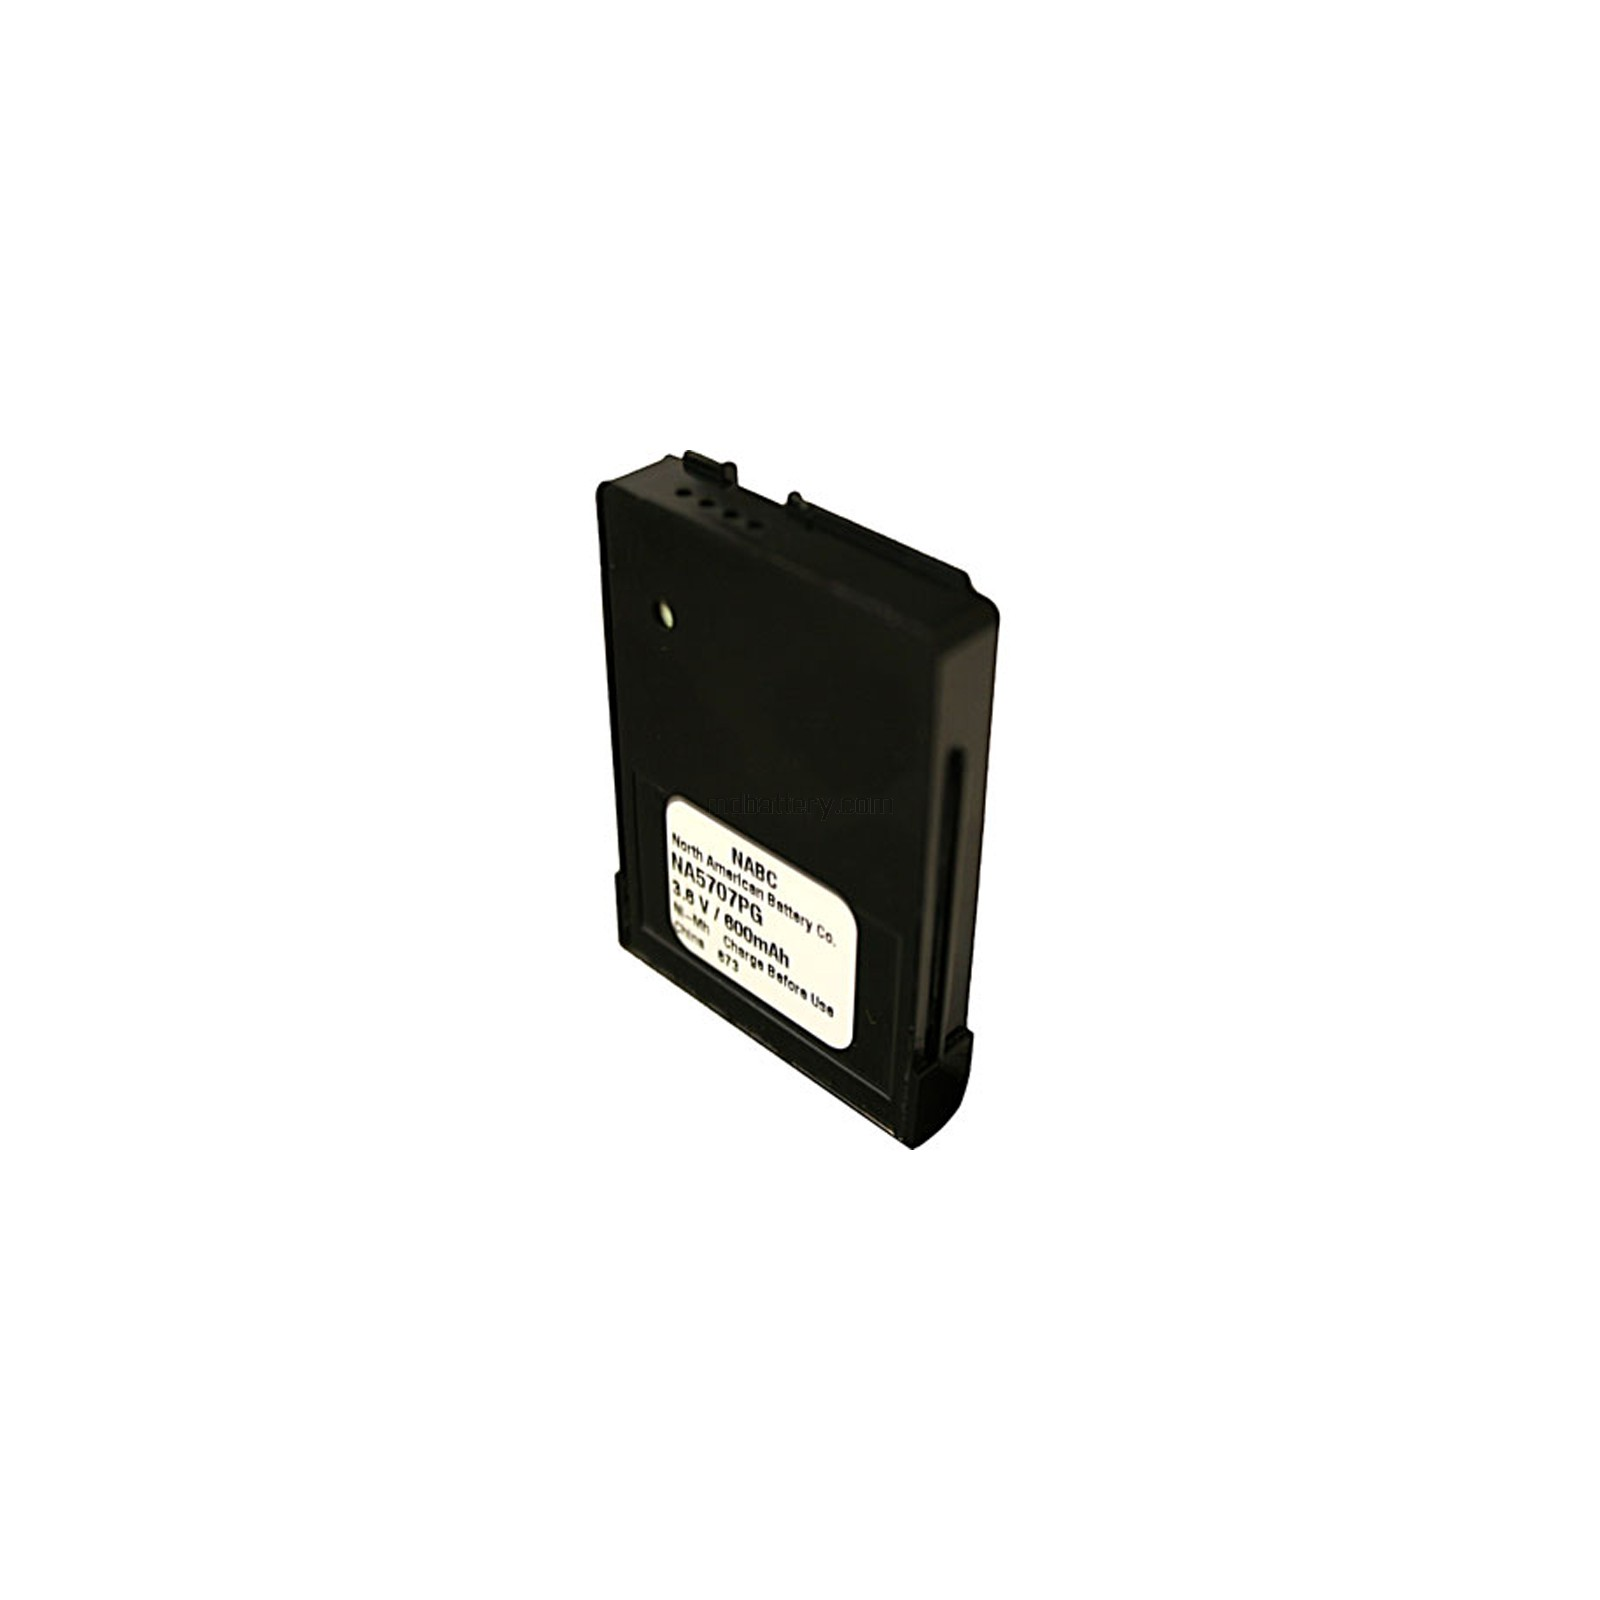 Battery Fits Motorola Minitor V 5 Replaces Rln5707a 29 95